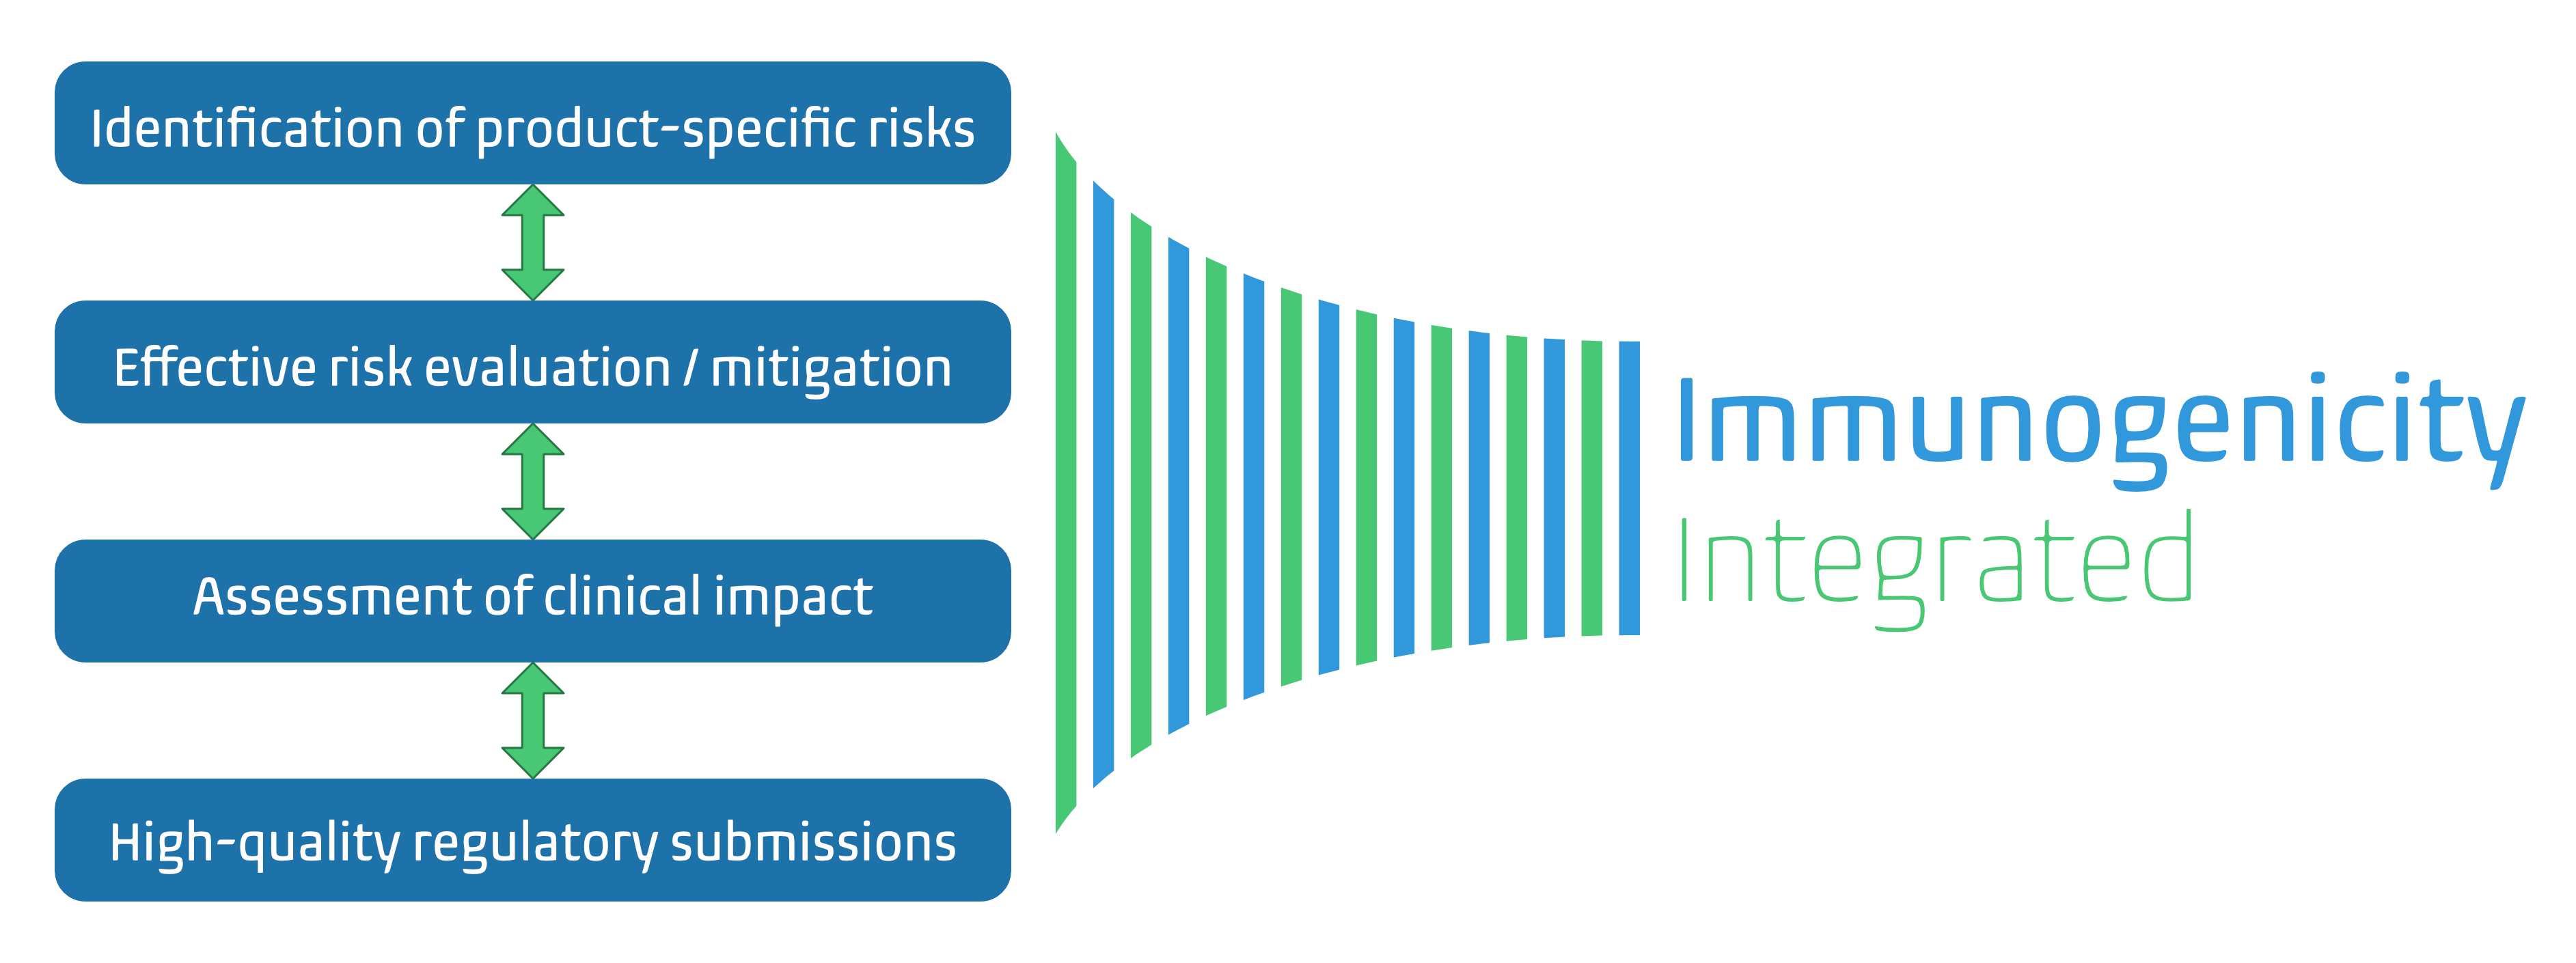 Diagram of what we do: Identification of product-specific risks; Effective risk evaluation / mitigation; Assessment of clinical impact; and High-quality regulatory submissions